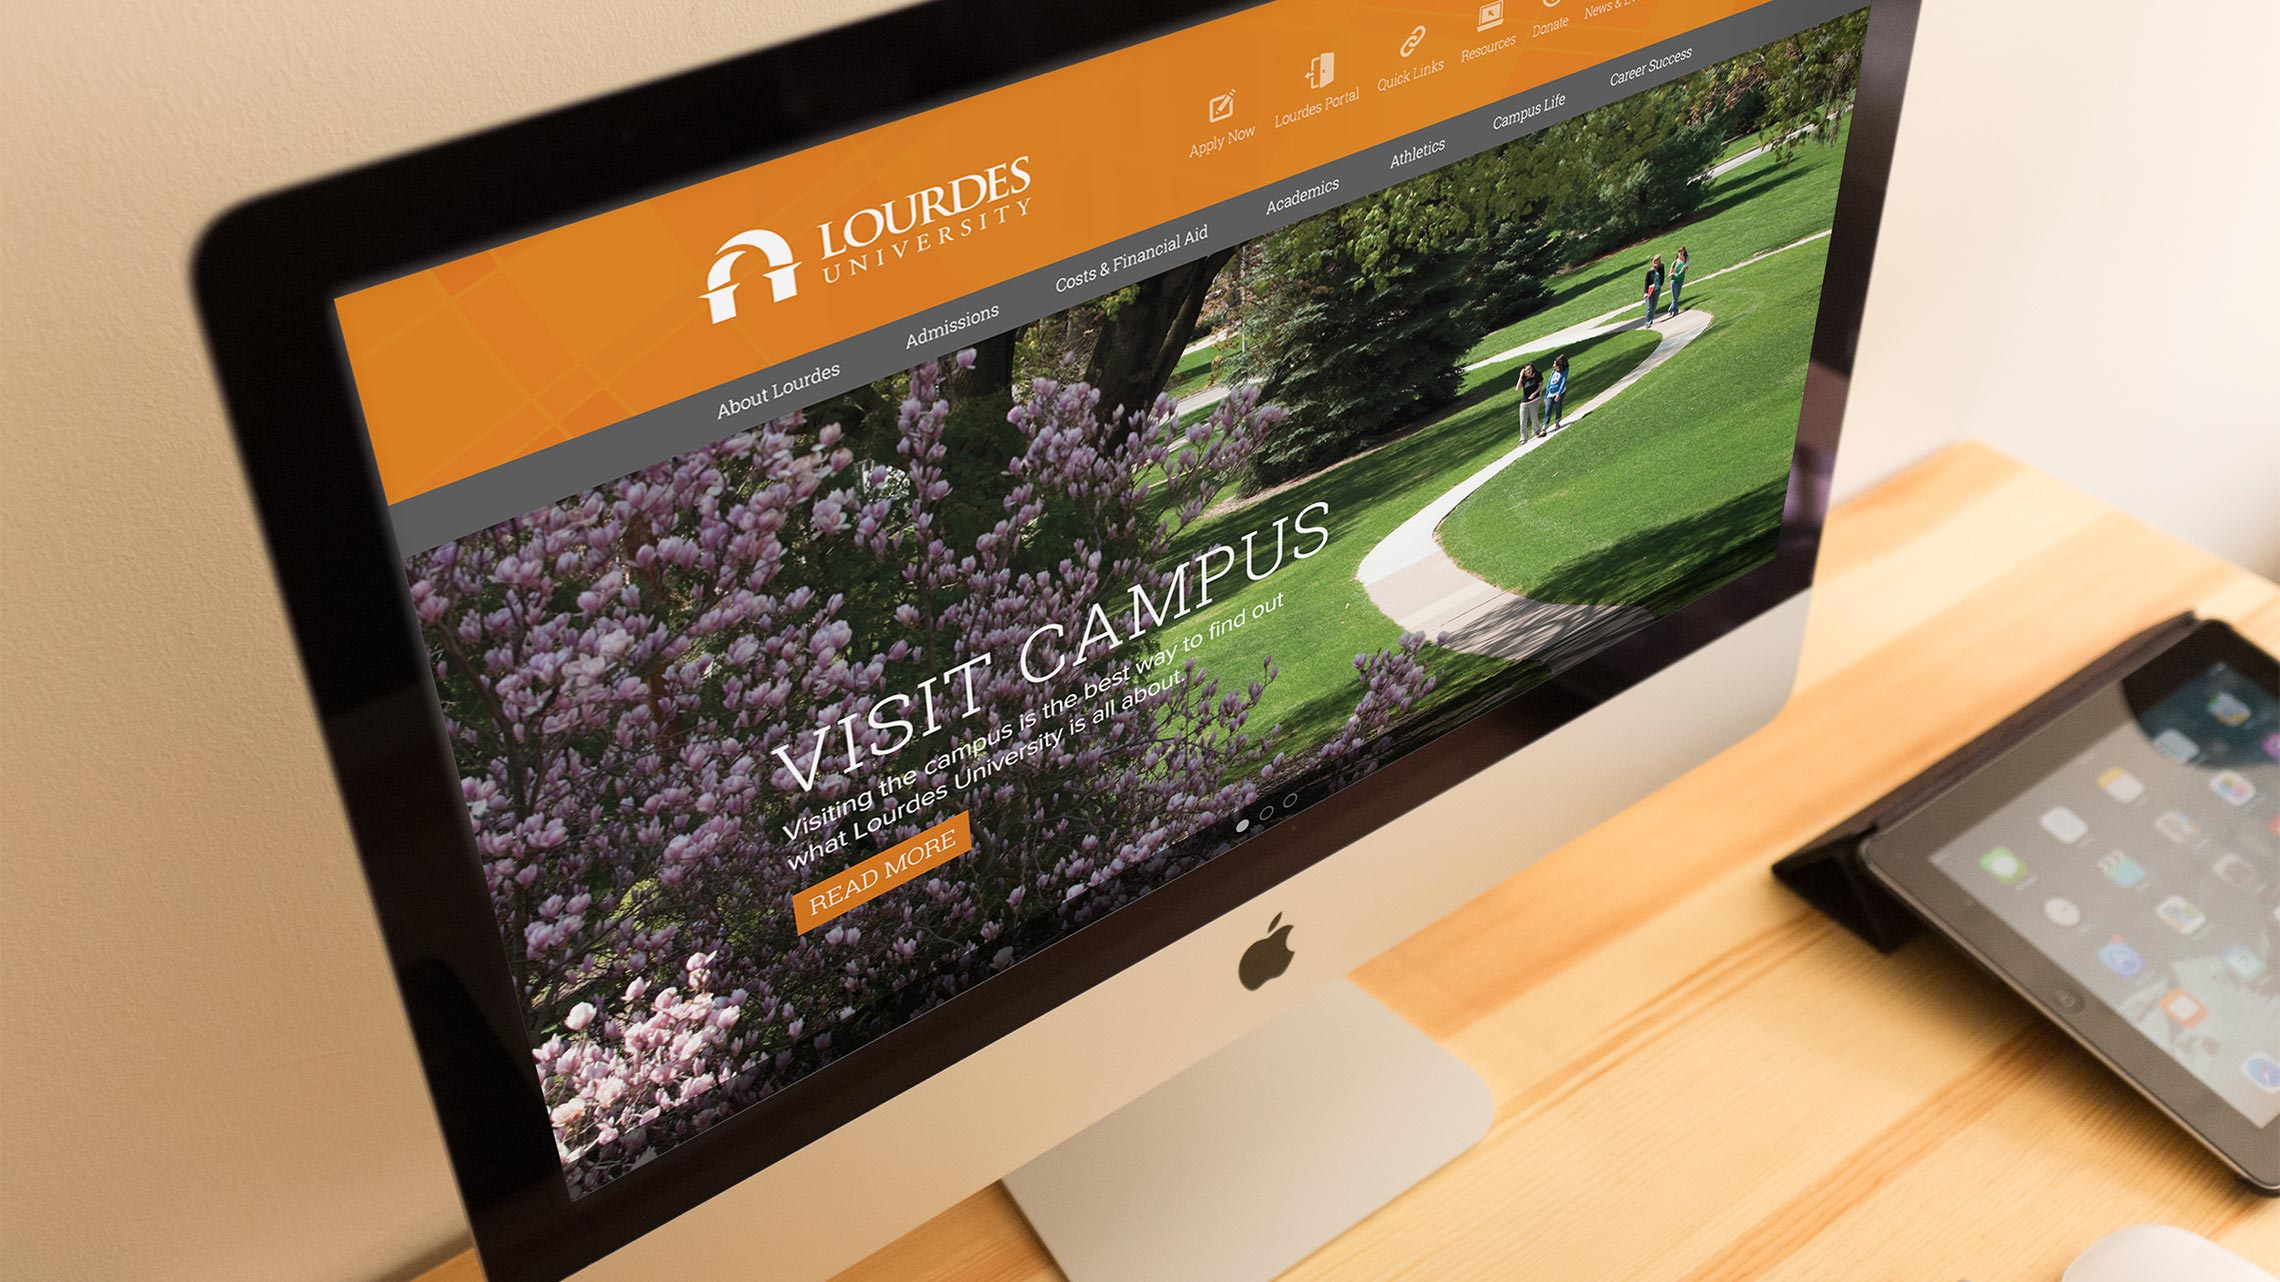 Lourdes website on an iMac